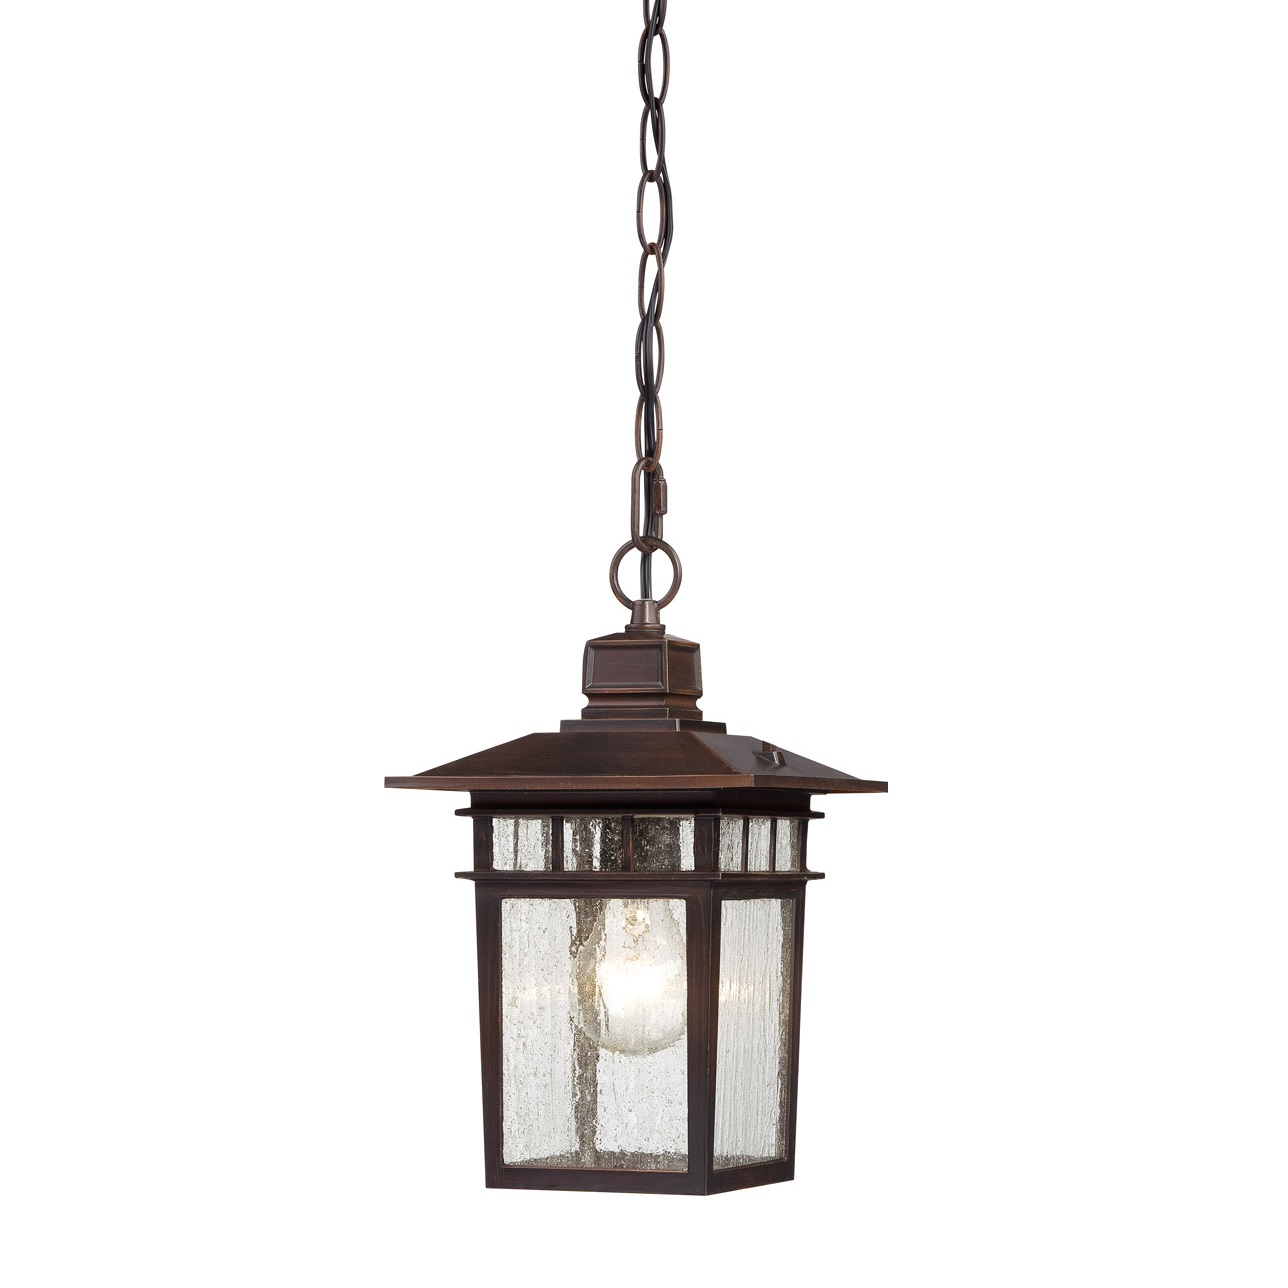 Outdoor Lantern Pendant Lighting : Nuvo lighting cove neck light outdoor hanging lantern in